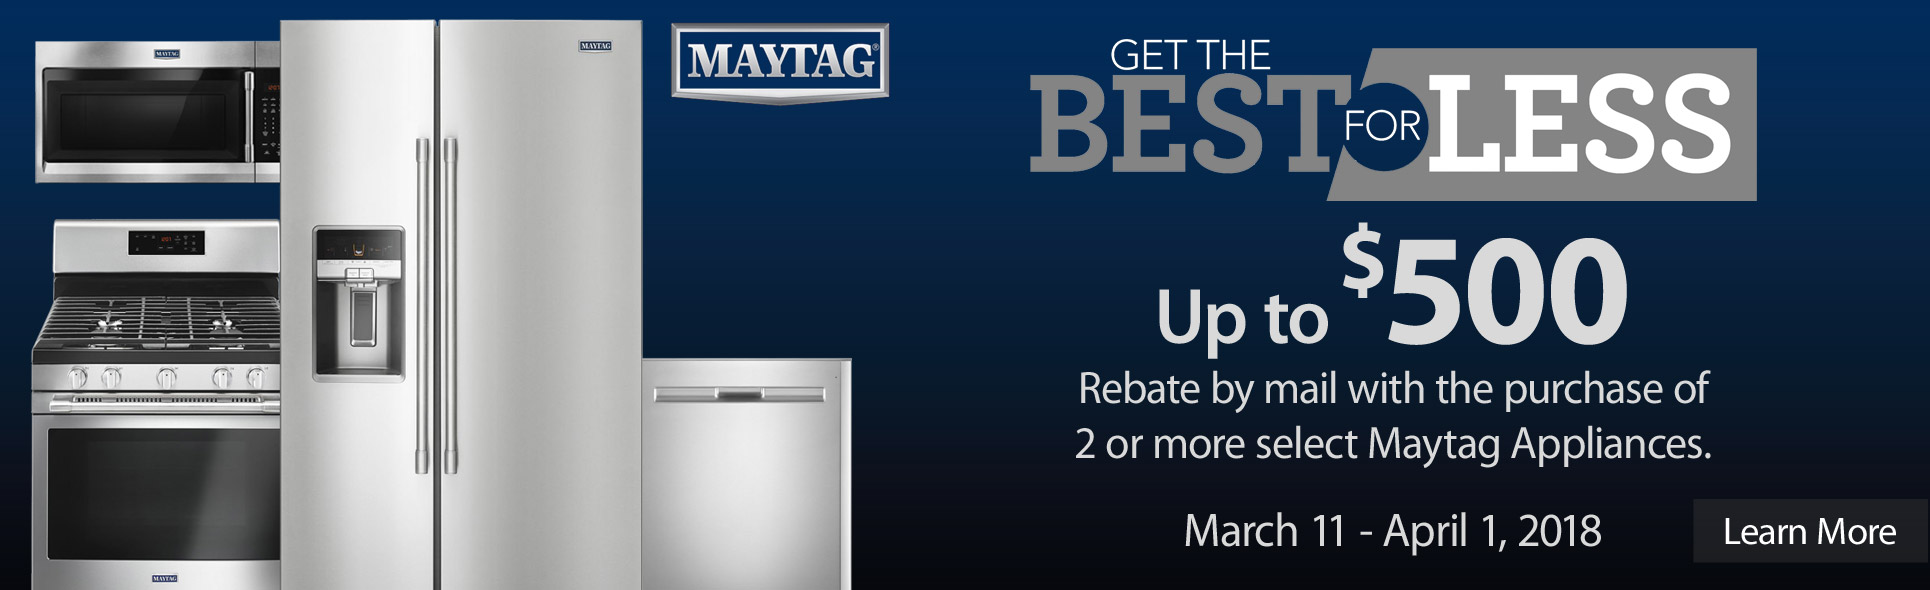 Maytag Best For Less- Save up to $500